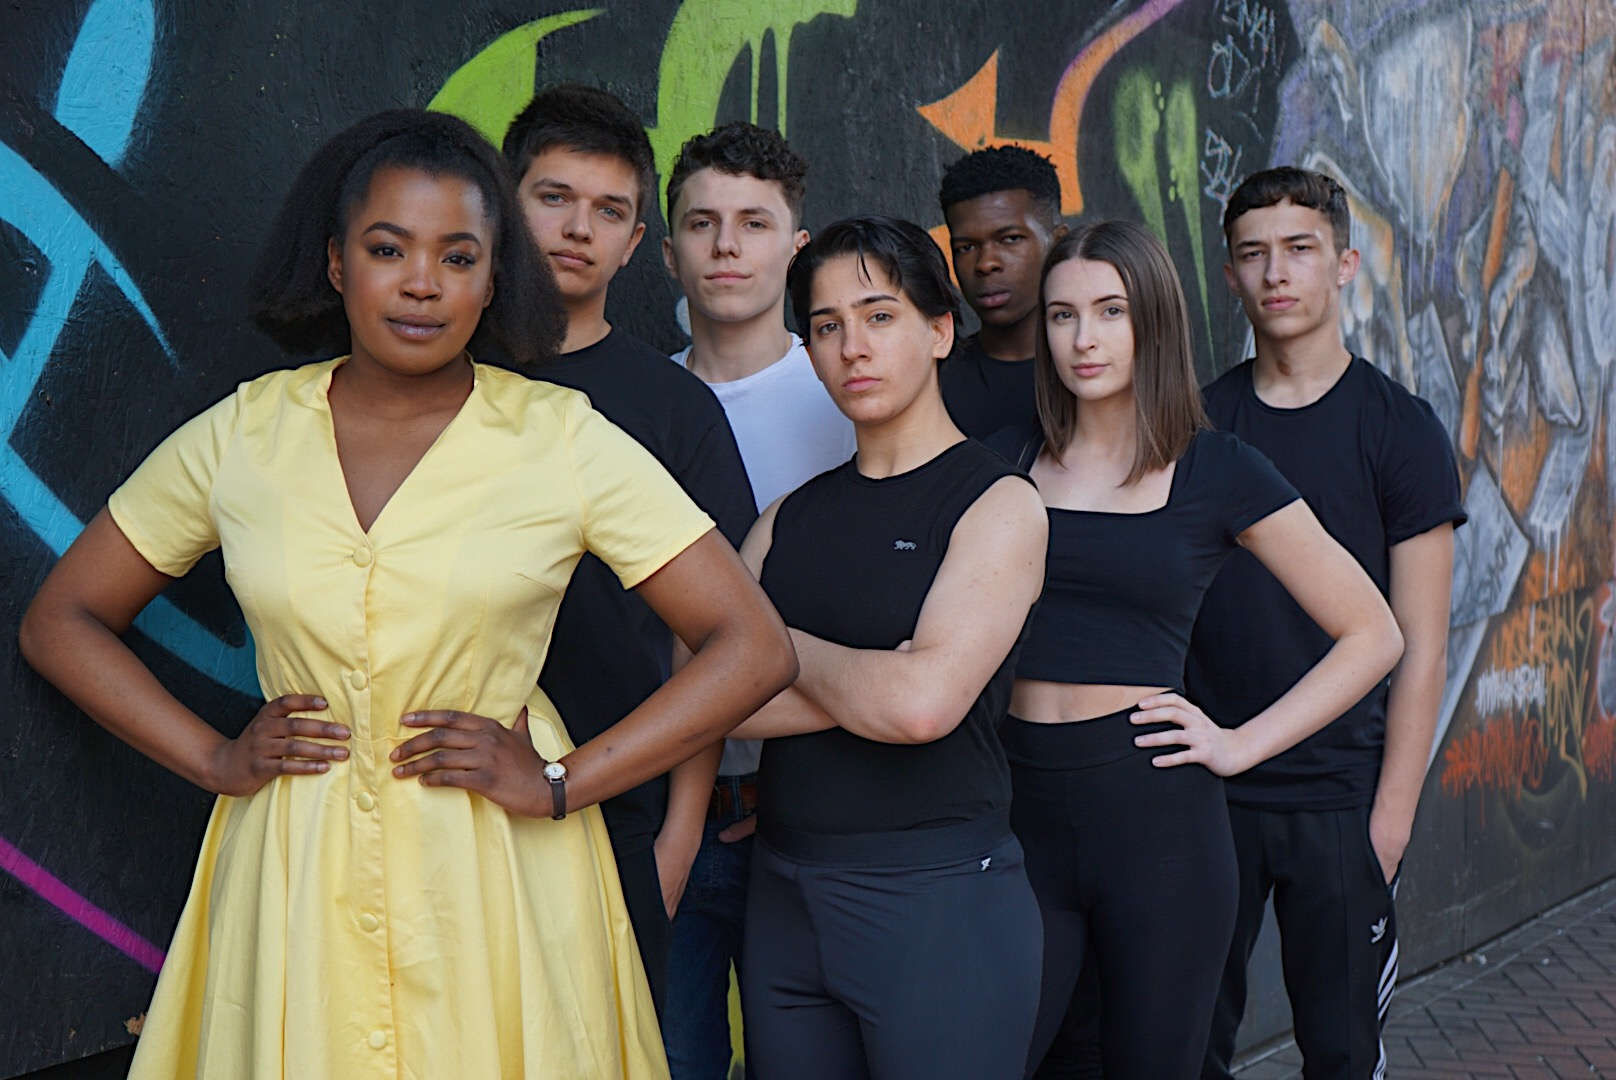 Birmingham Hippodrome's first home grown youth production to feature 40 talented young performers